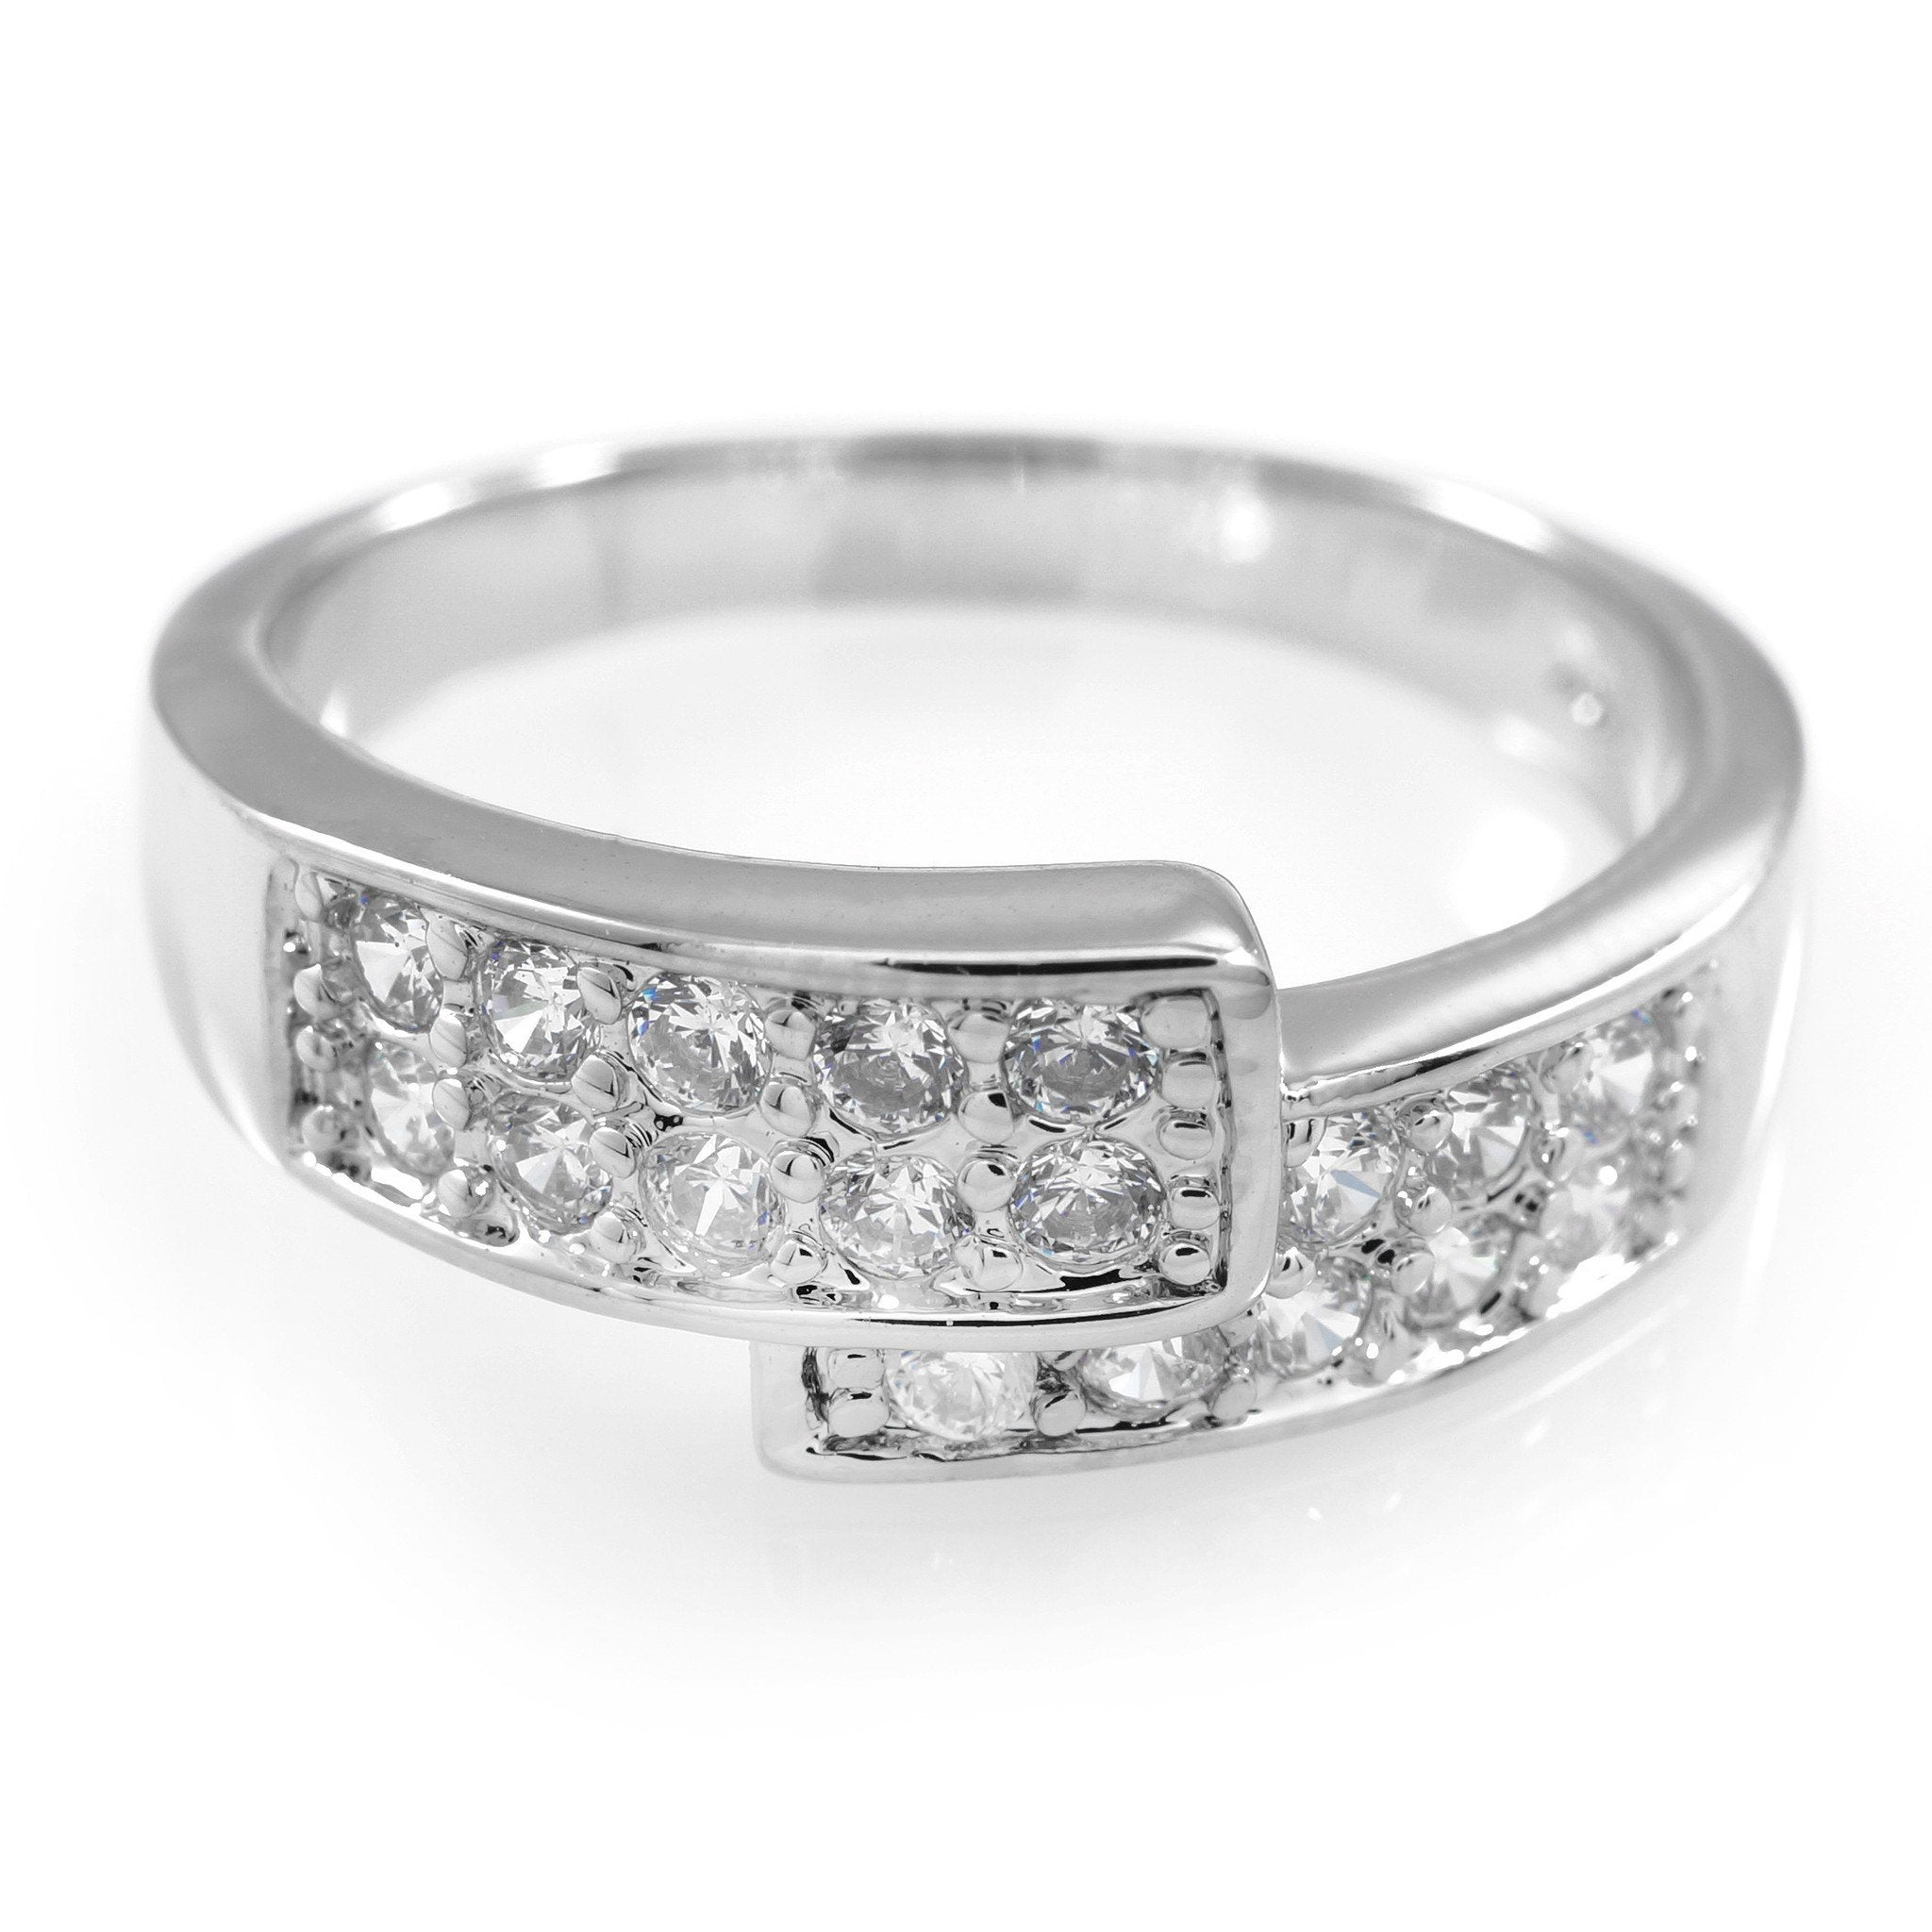 18K White Gold Iced Out Engagement Band Pinky Ring